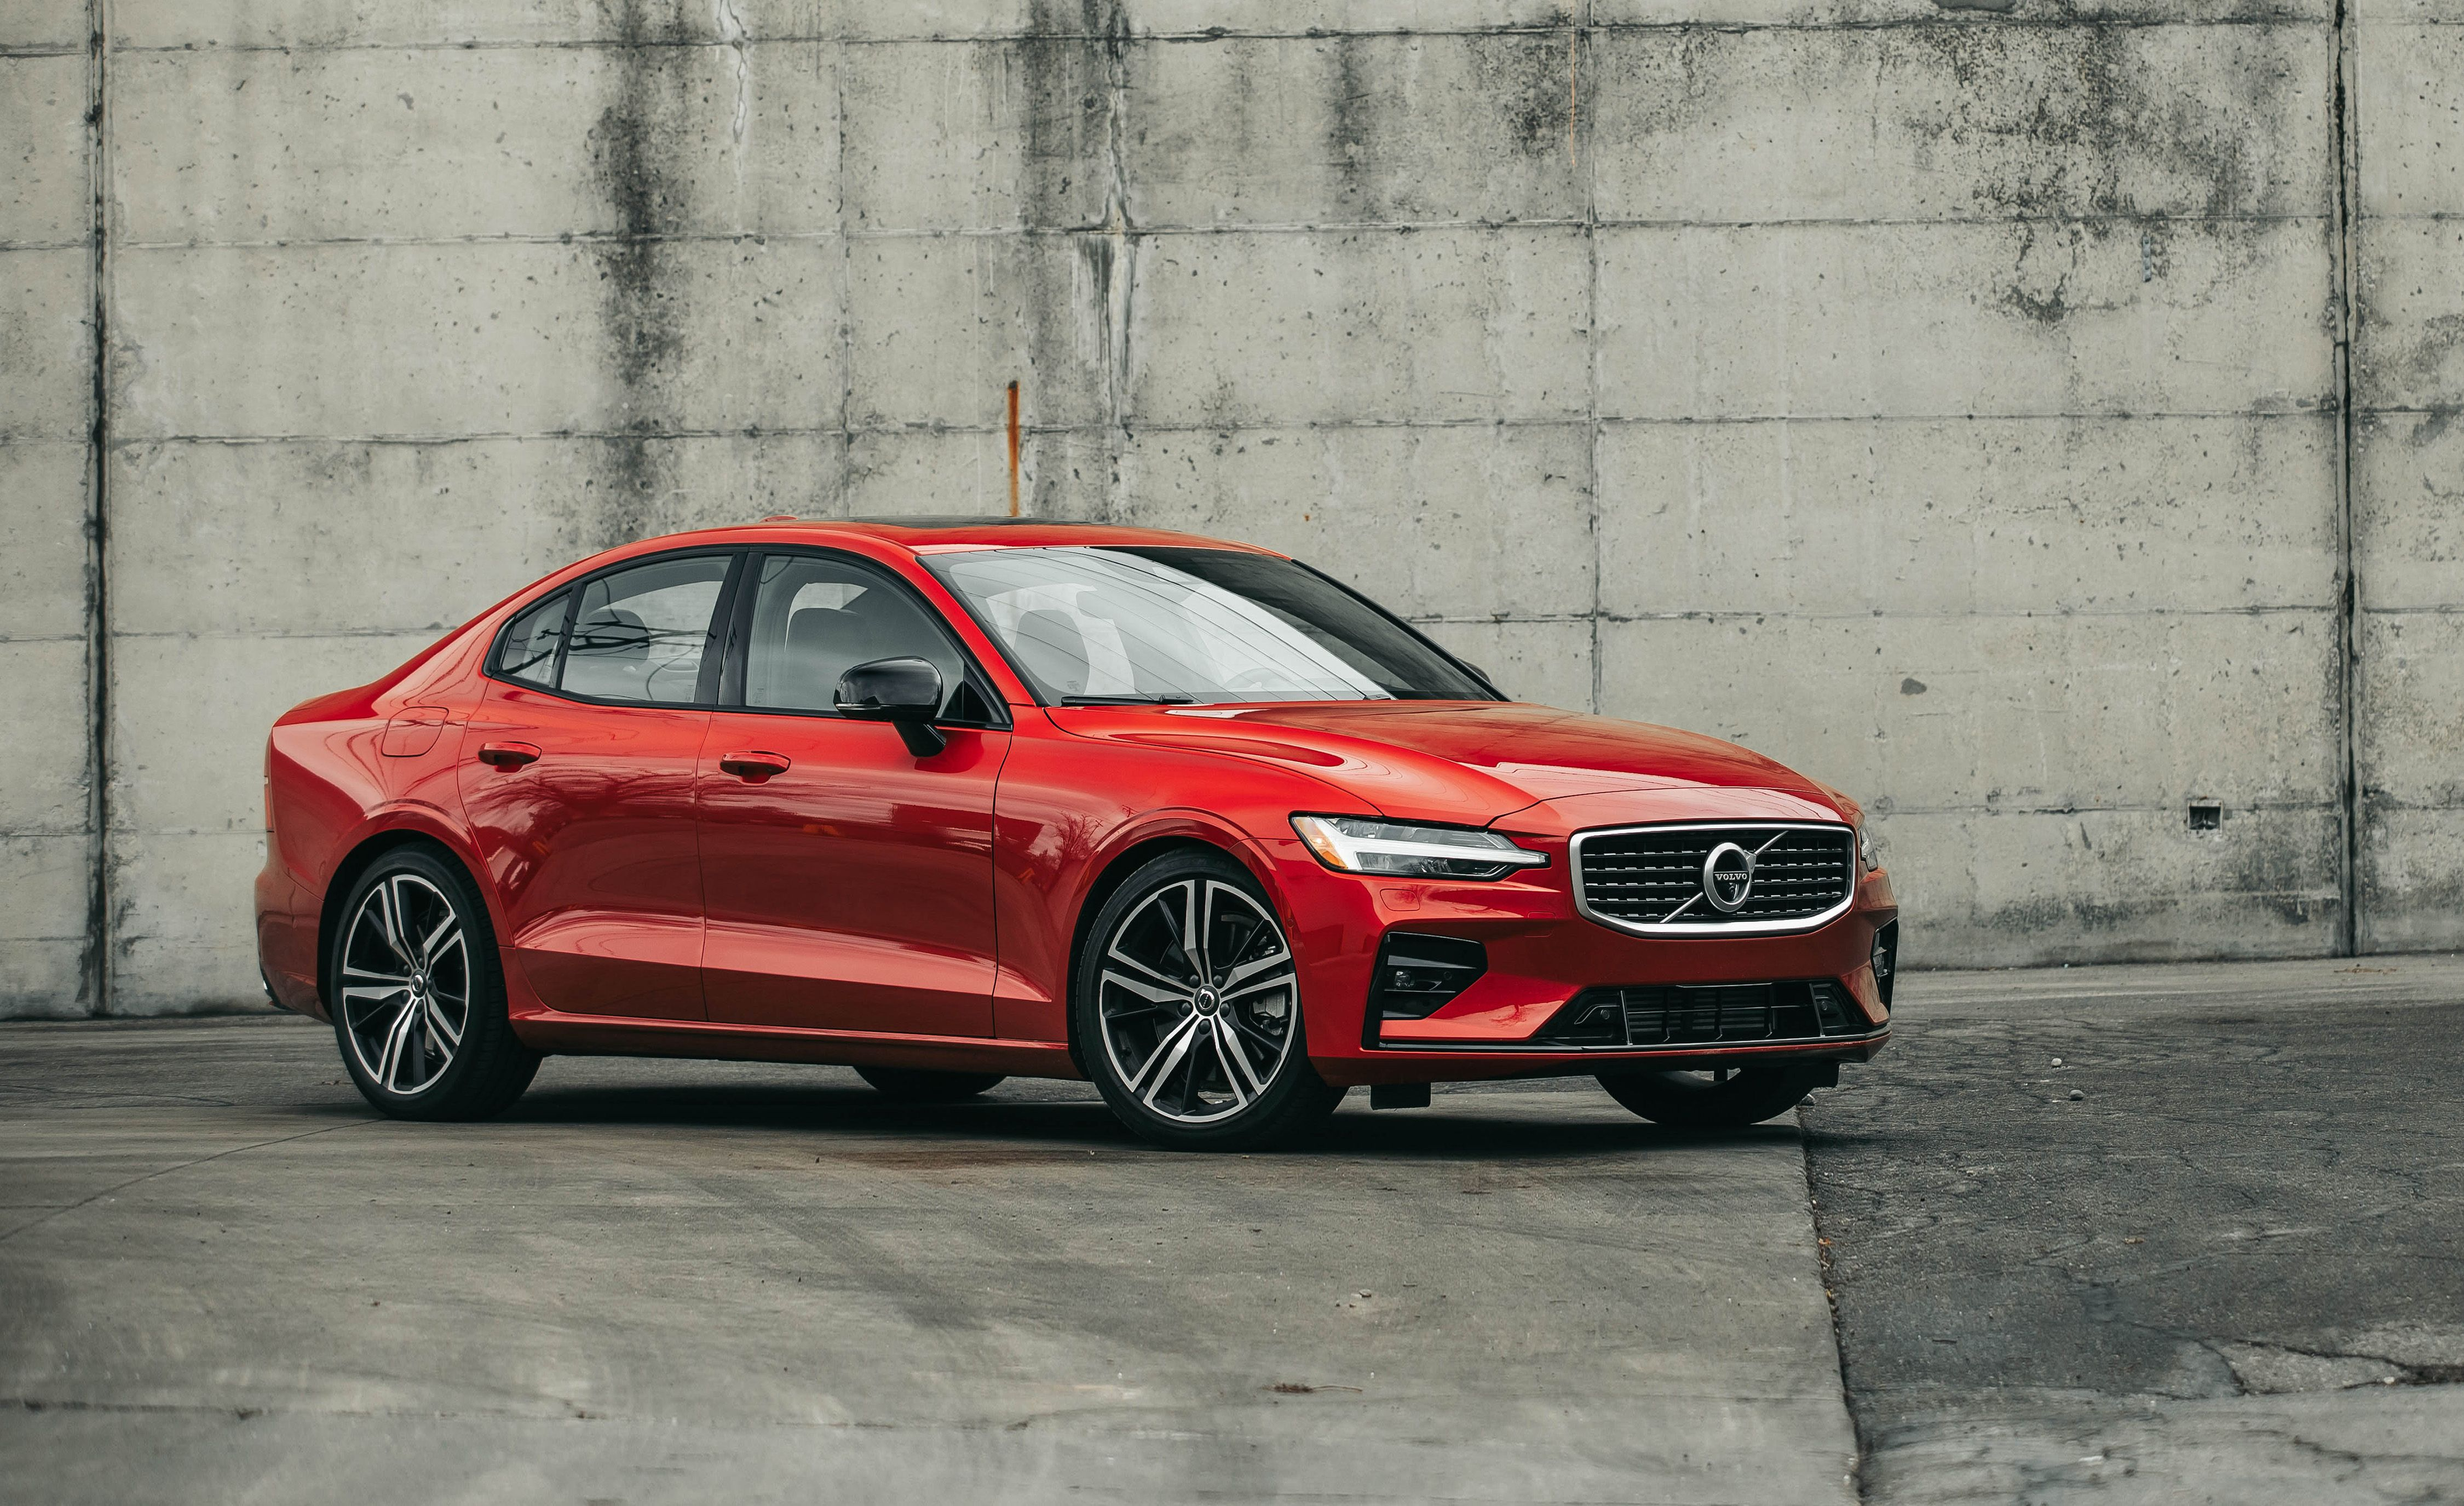 7. Volvo S60 At long last, Volvo's S60 sedan has been redesigned and no longer shares bits with old Ford products. It emerges from this transformation as a compelling alternative to the sports-sedan establishment.